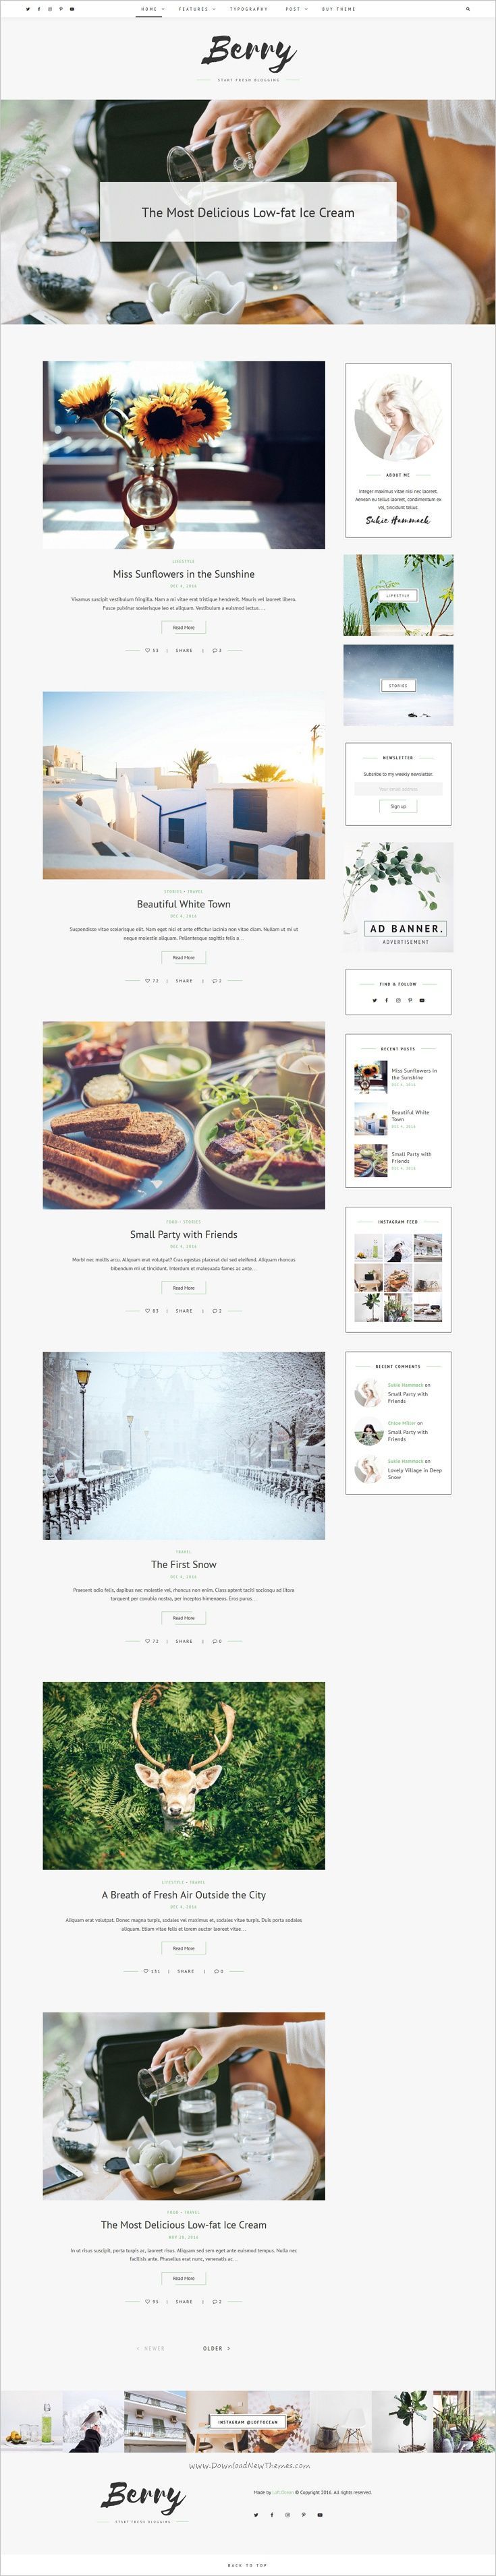 Berry is a clean and elegant design personal responsive #WordPress #blog #theme with fresh colors and modern style download now➩ https://themeforest.net/item/berry-a-fresh-personal-blog-theme/19065824?ref=Datasata